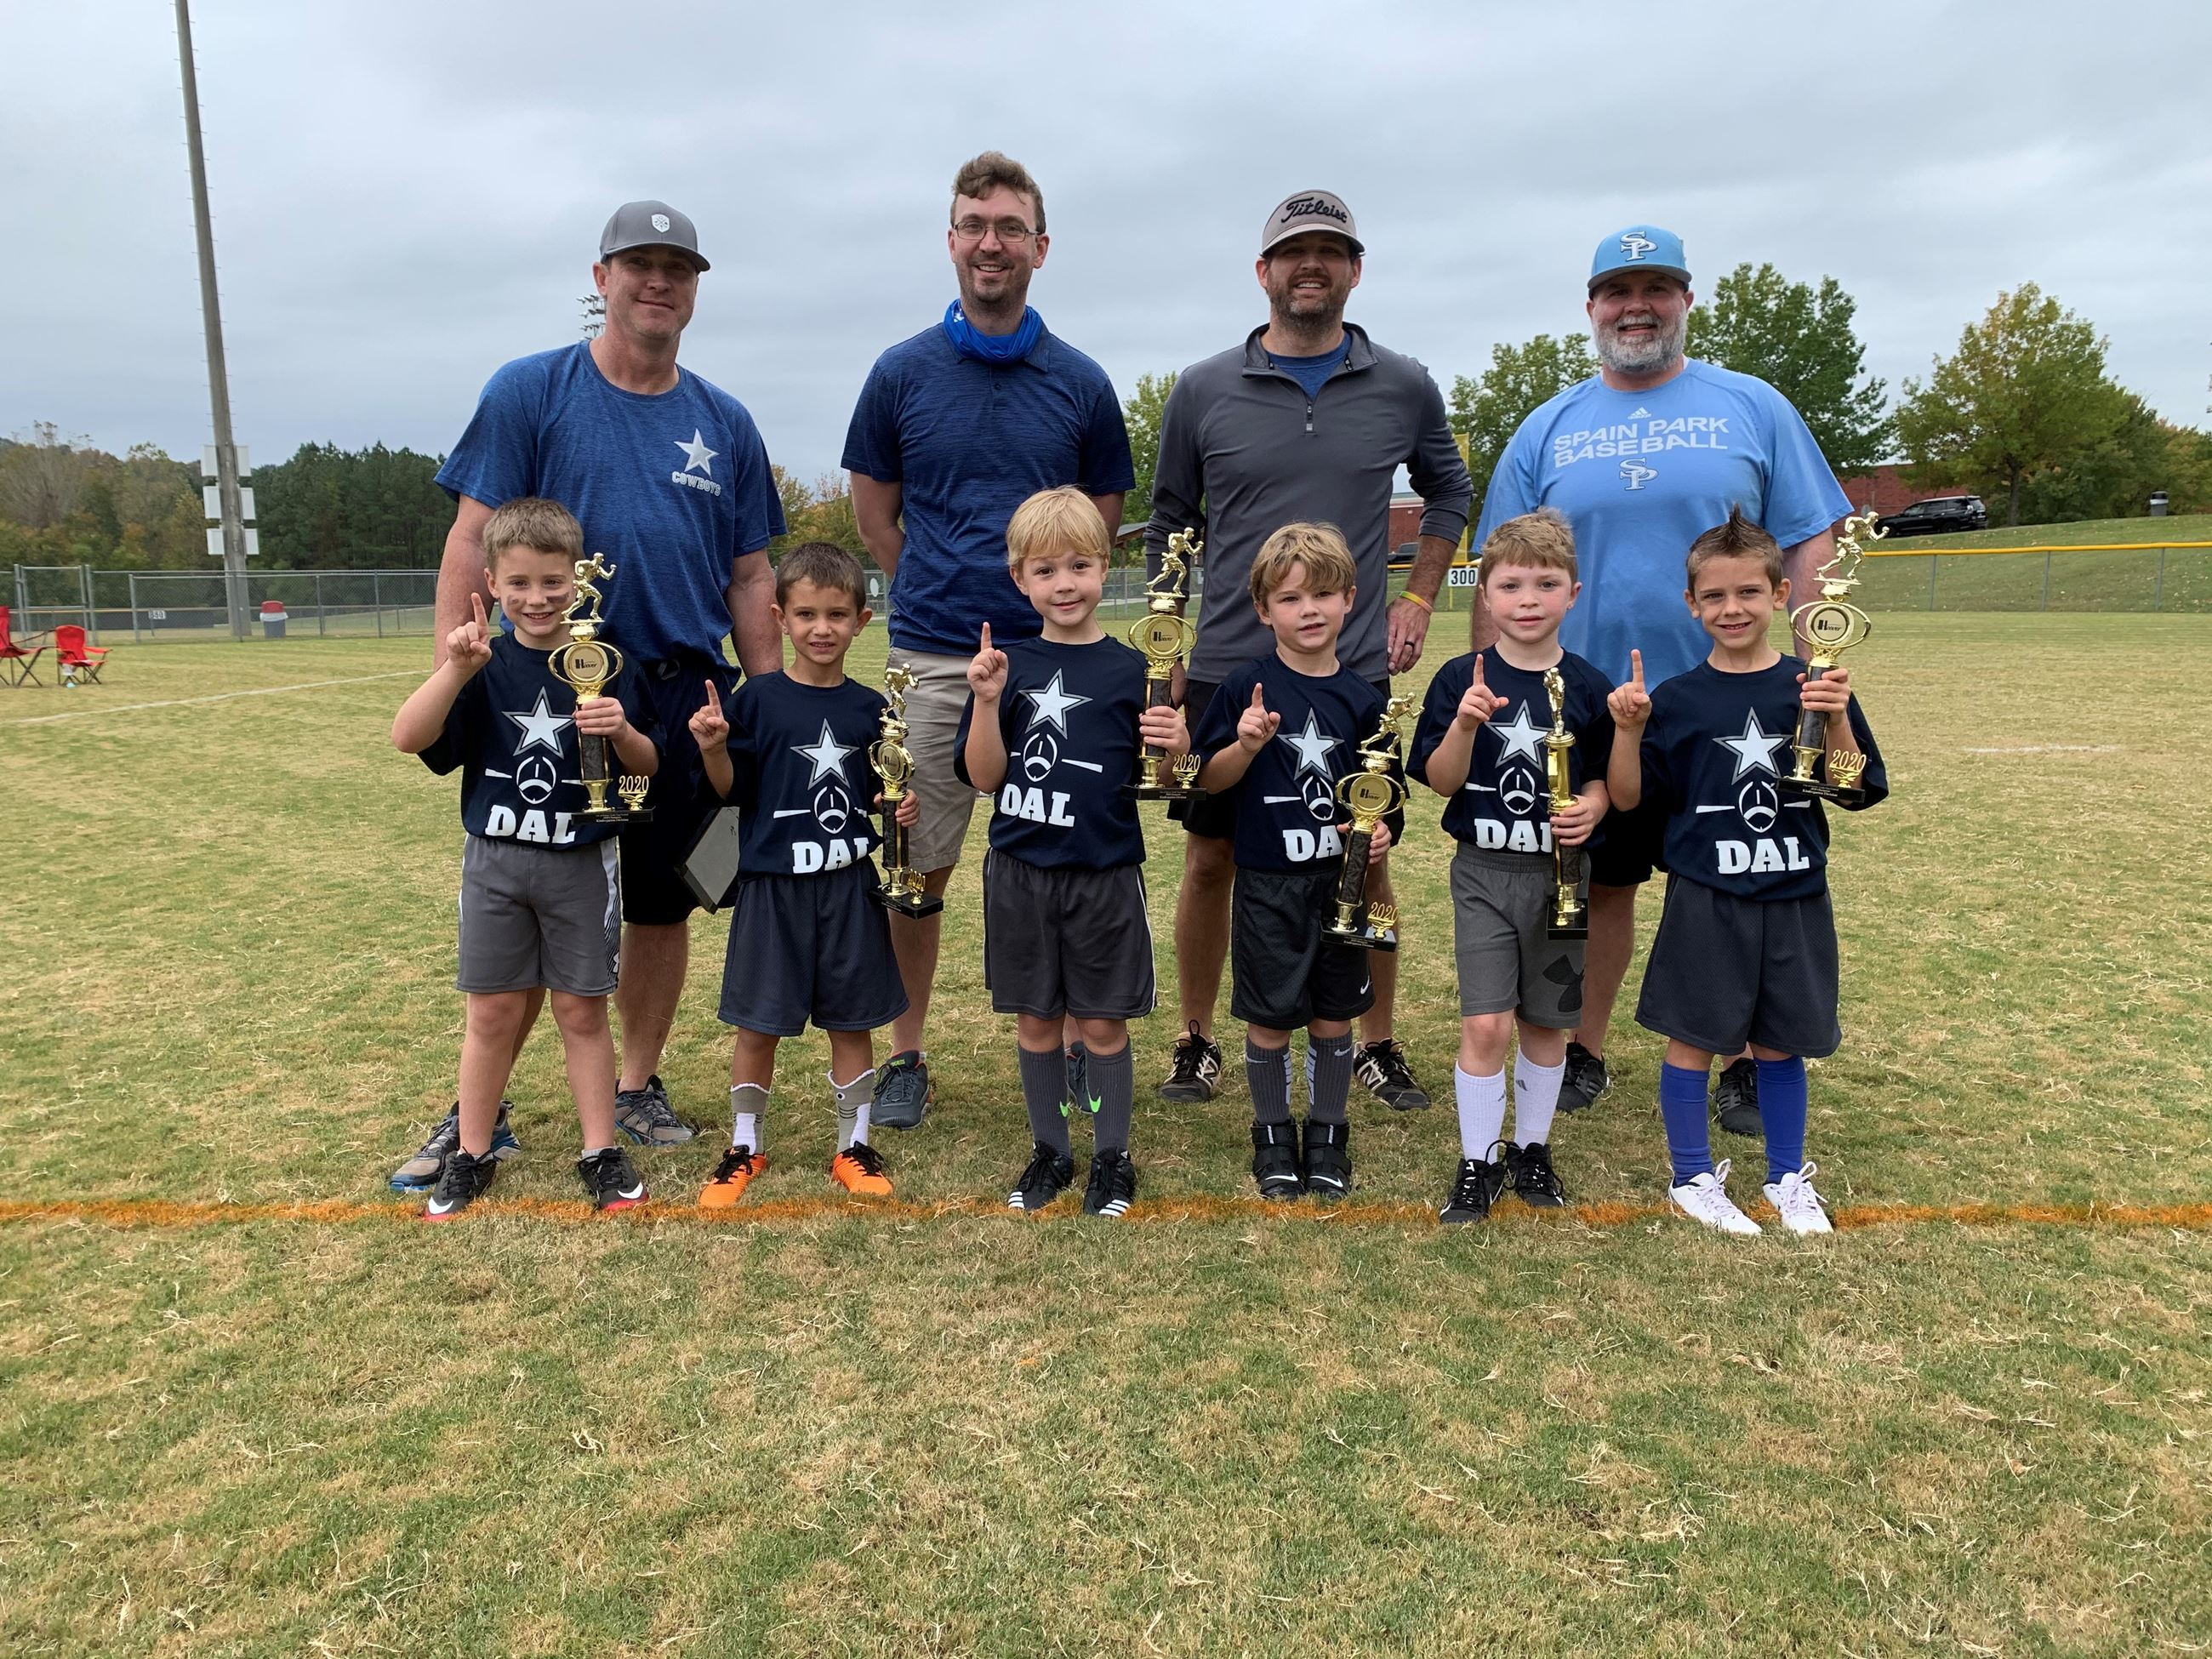 Kindergarten Champions Coach Smith